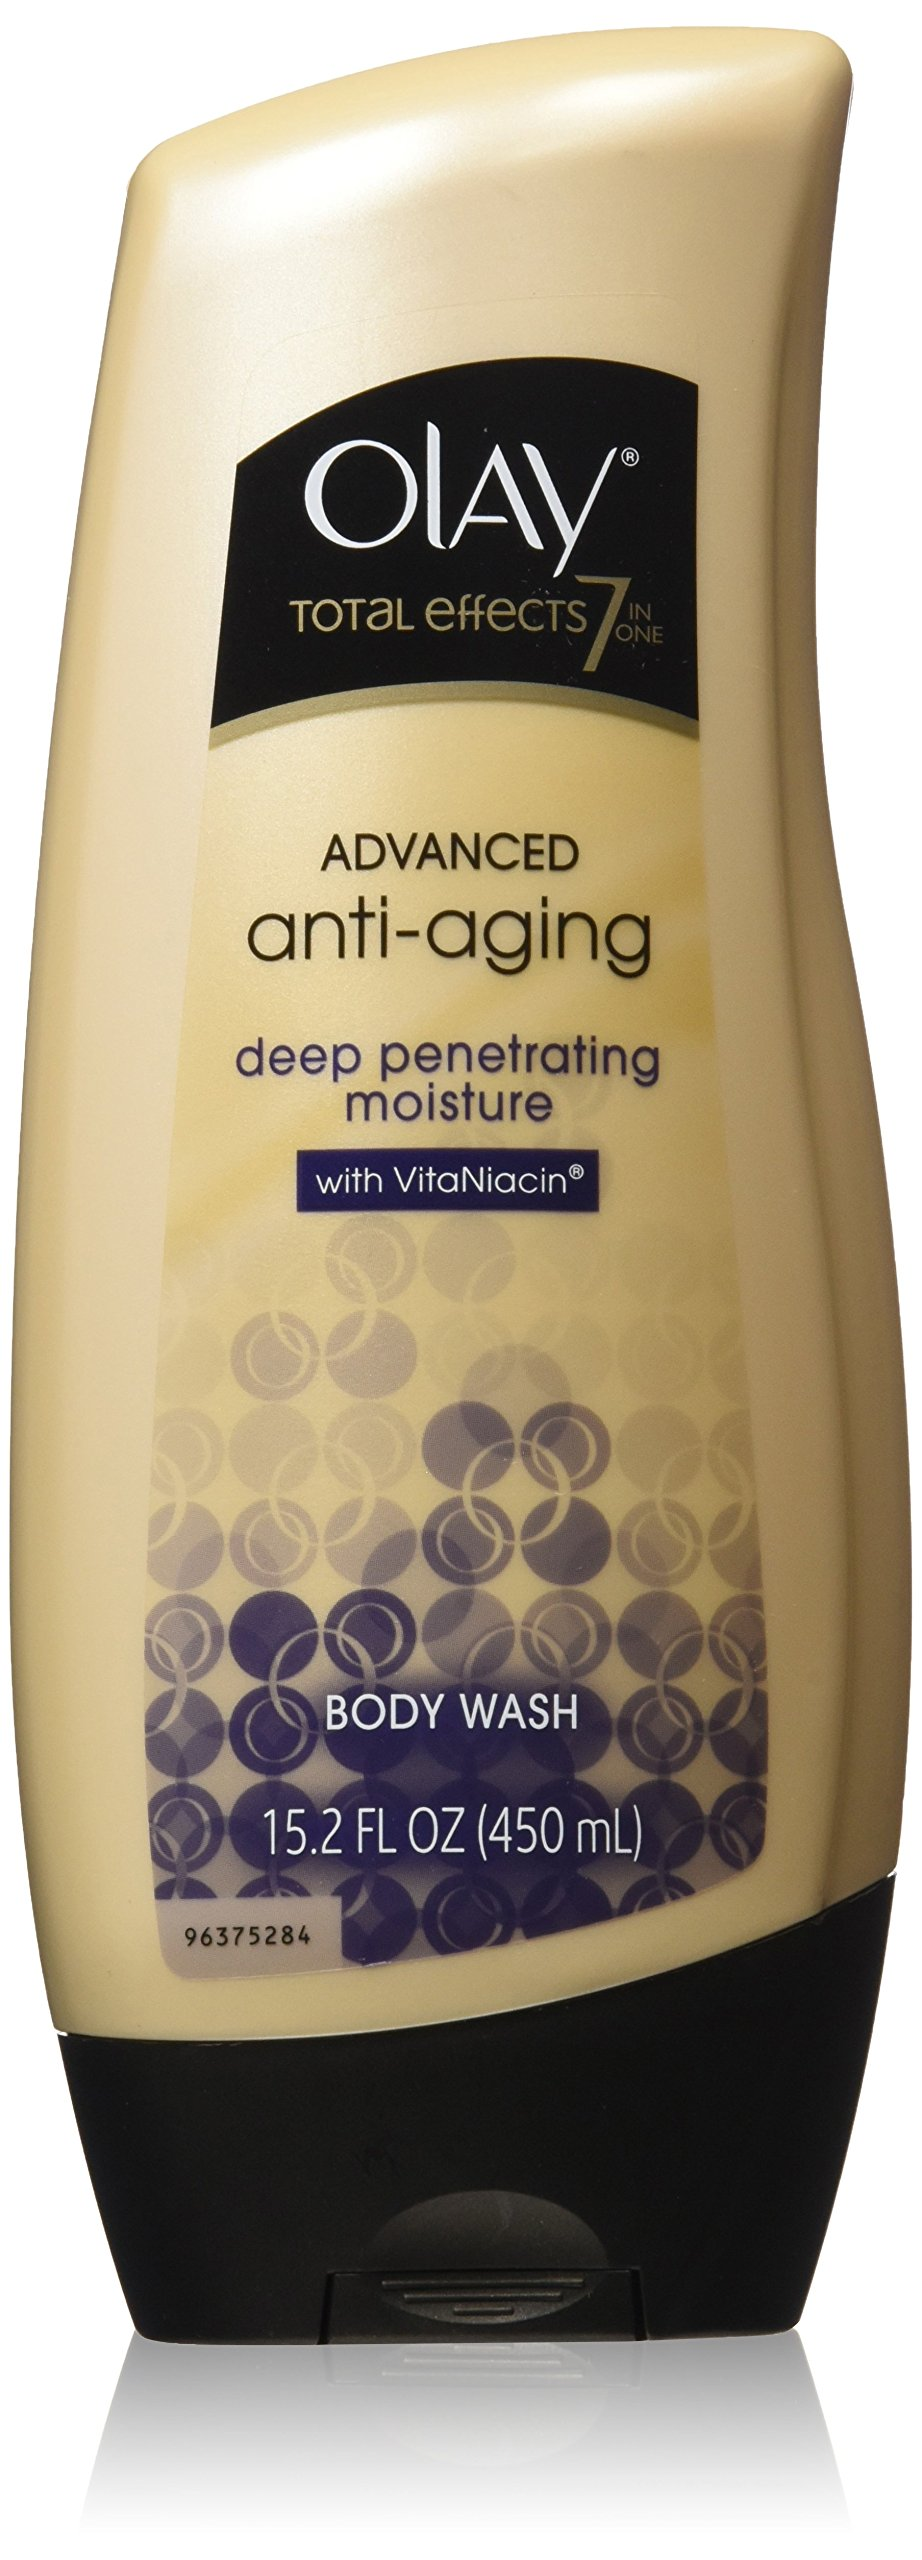 Olay Total Effects Advanced Anti-Aging, Deep Penetrating Moisture Body Wash with VitaNiacin for Younger-Looking Skin - 15.2 Fl Oz, Pack of 2